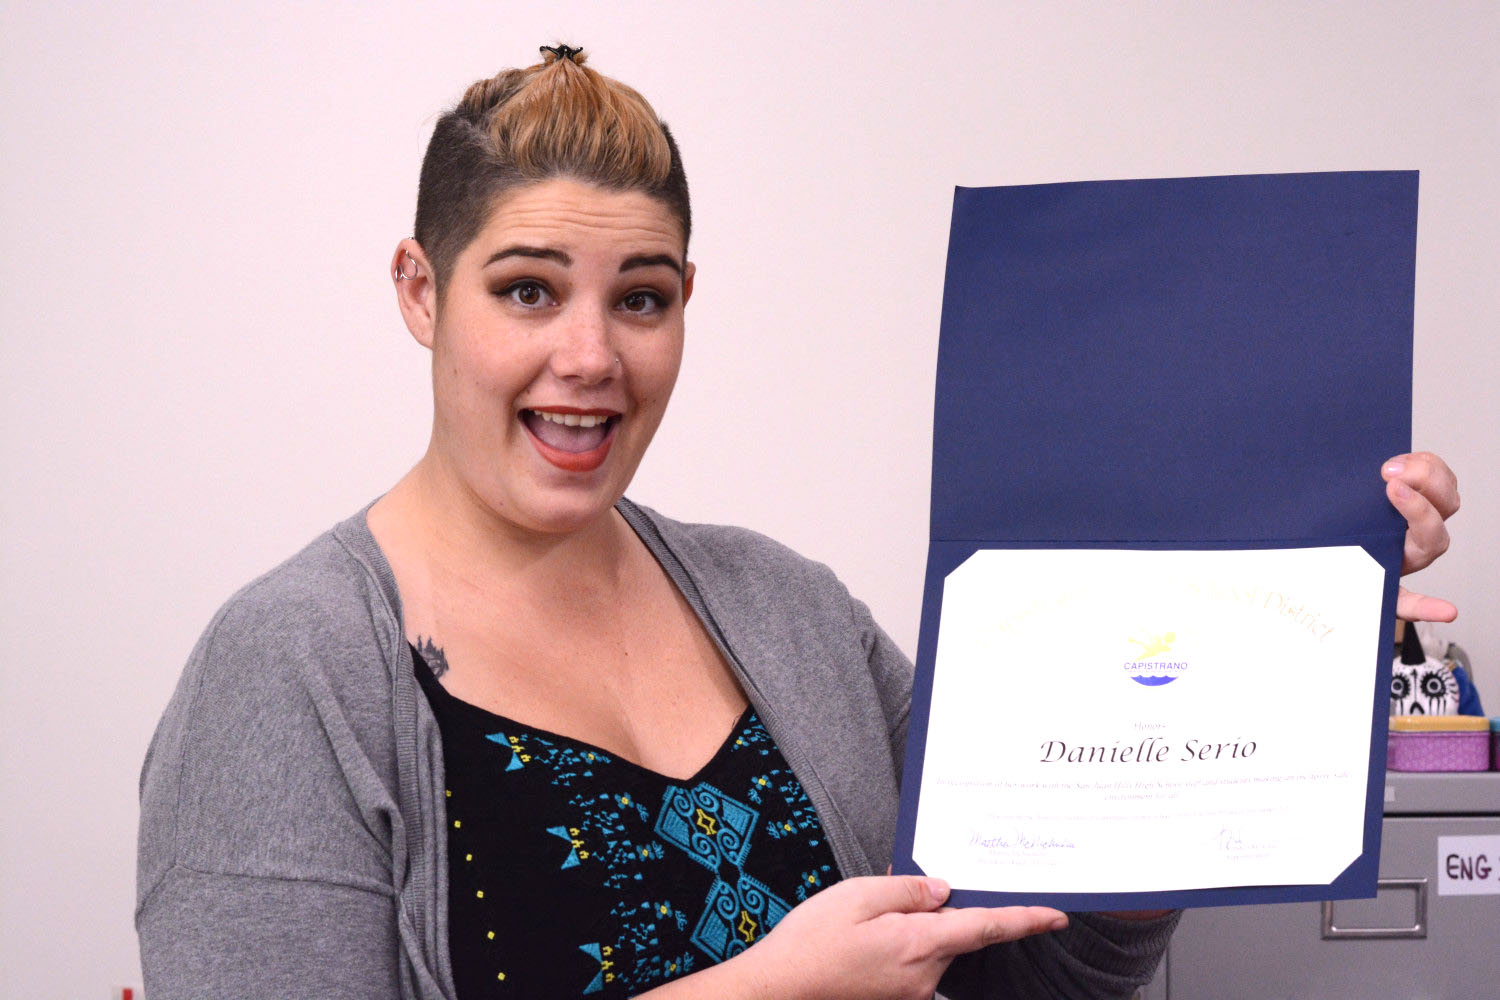 Danielle Serio holding the certificate for the